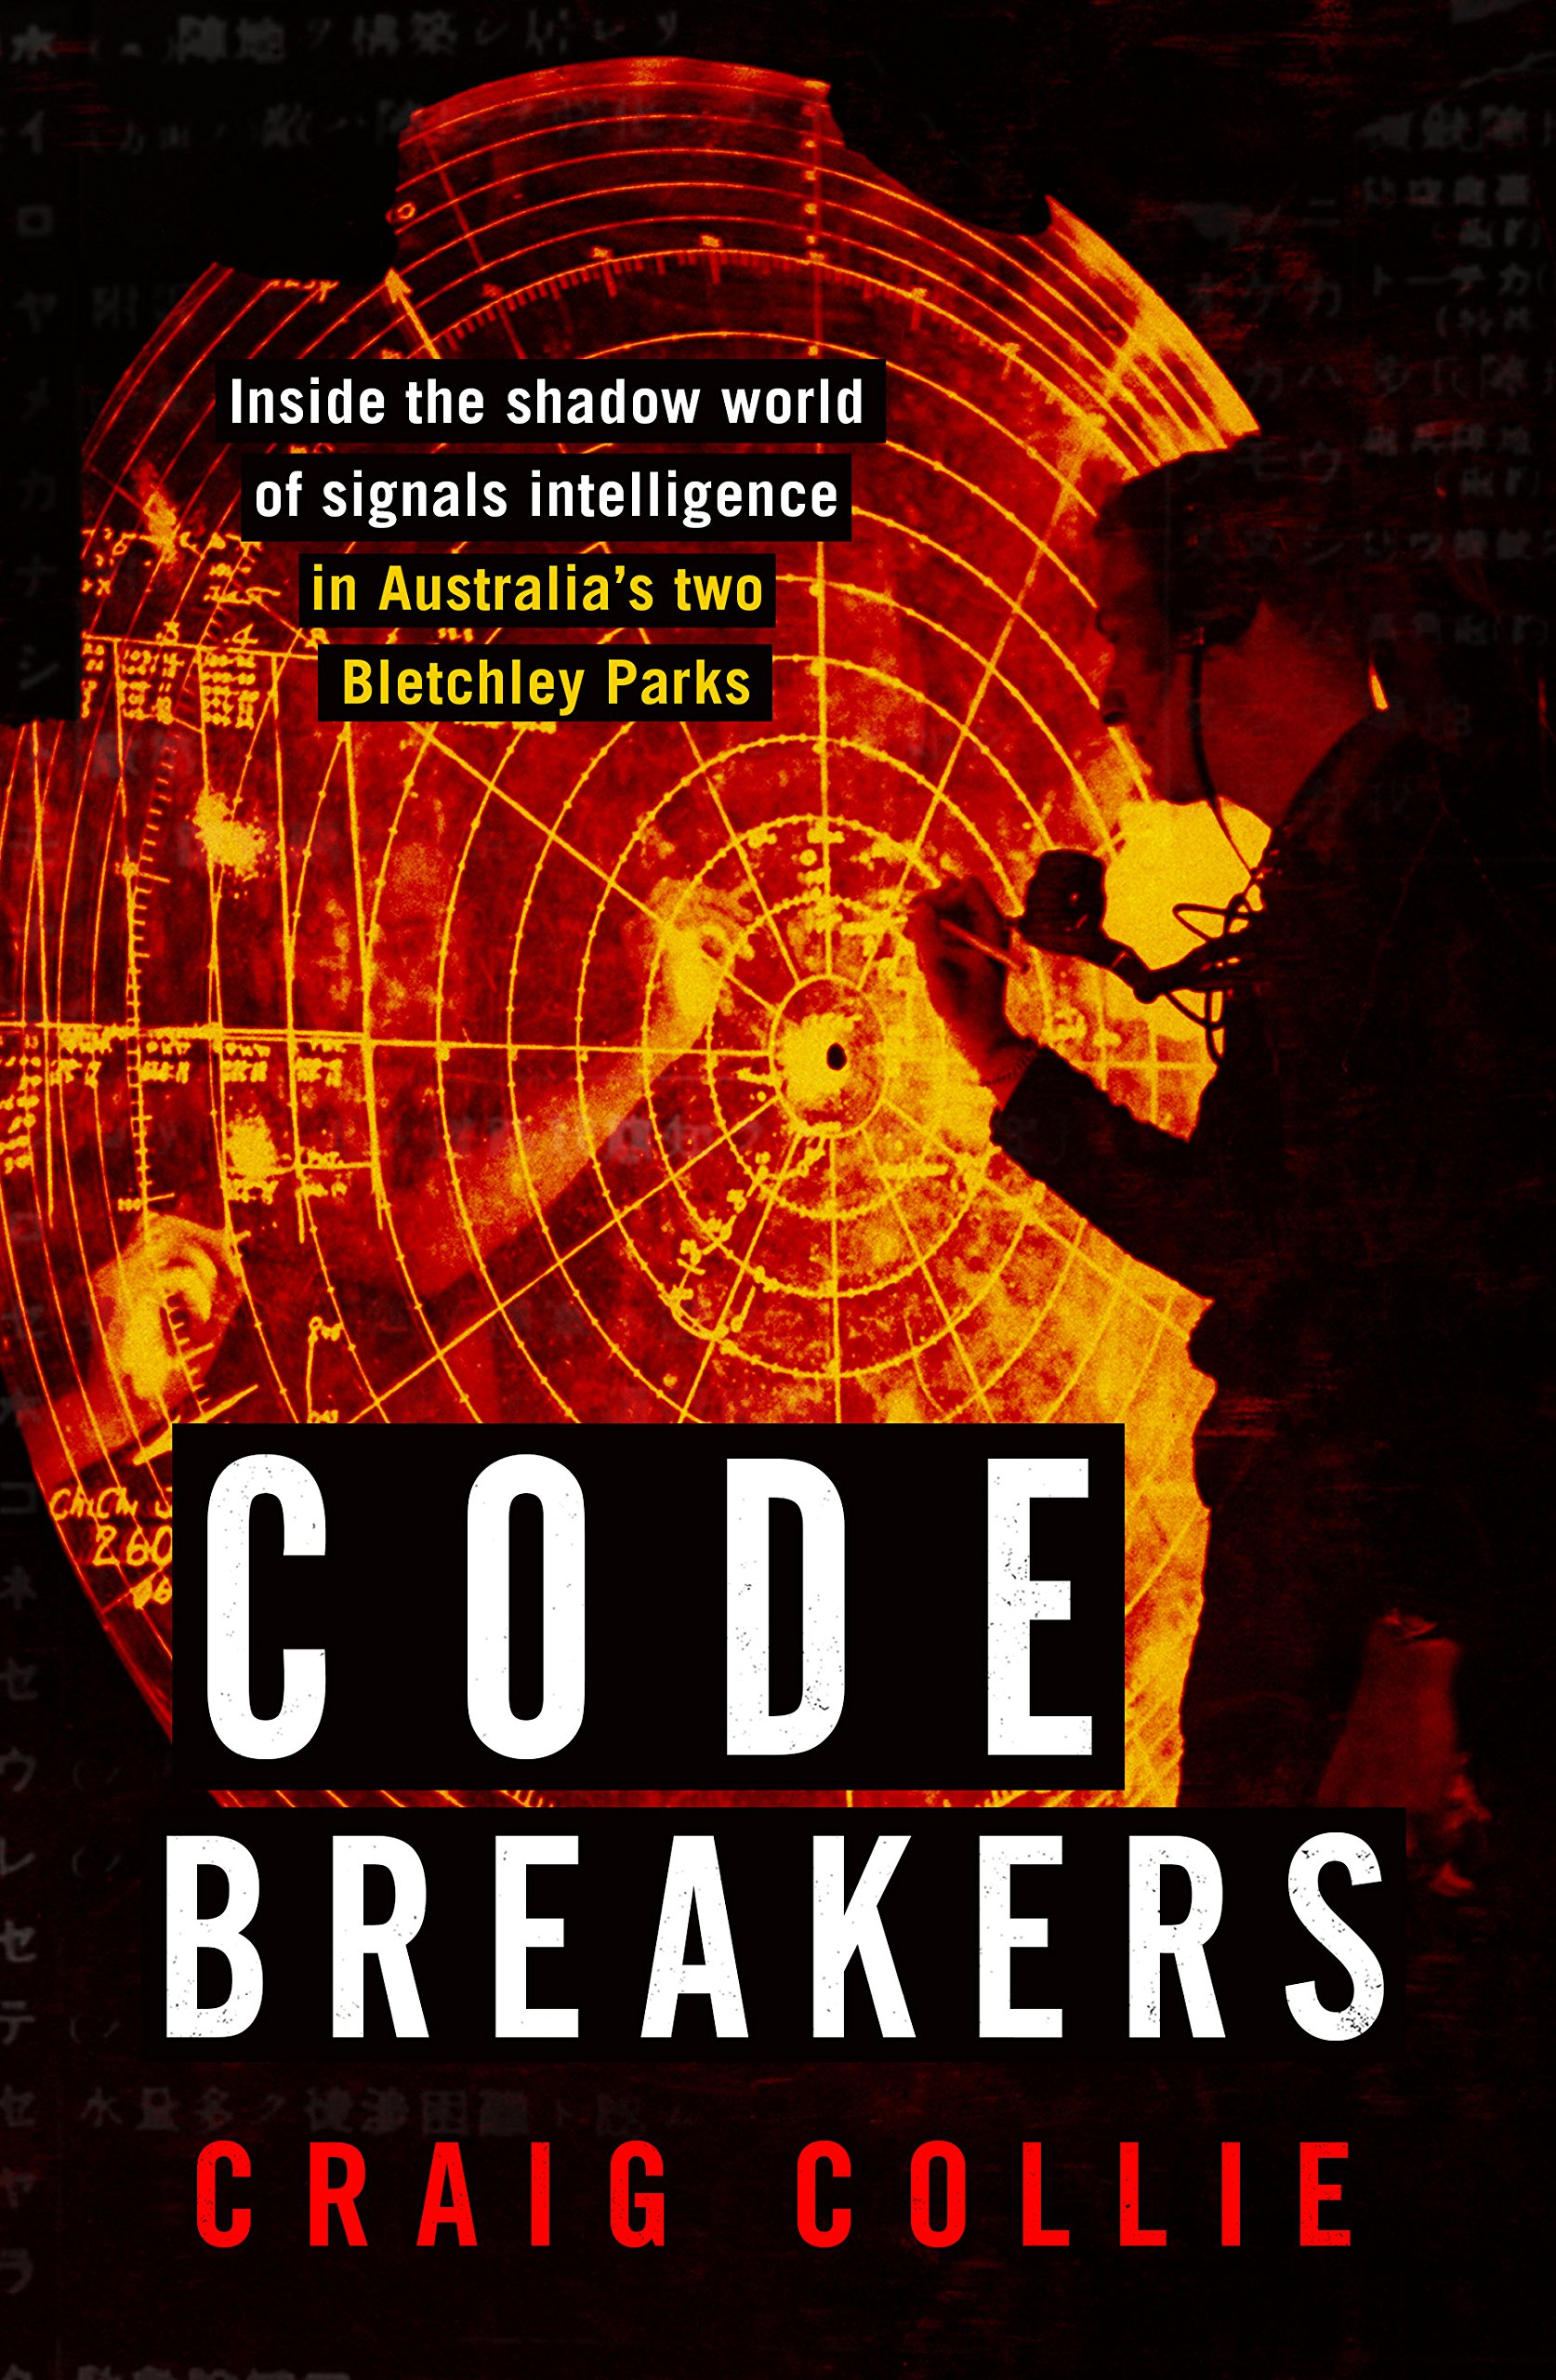 Download Code Breakers: Inside the Shadow World of Signals Intelligence in Australia's Two Bletchley Parks PDF